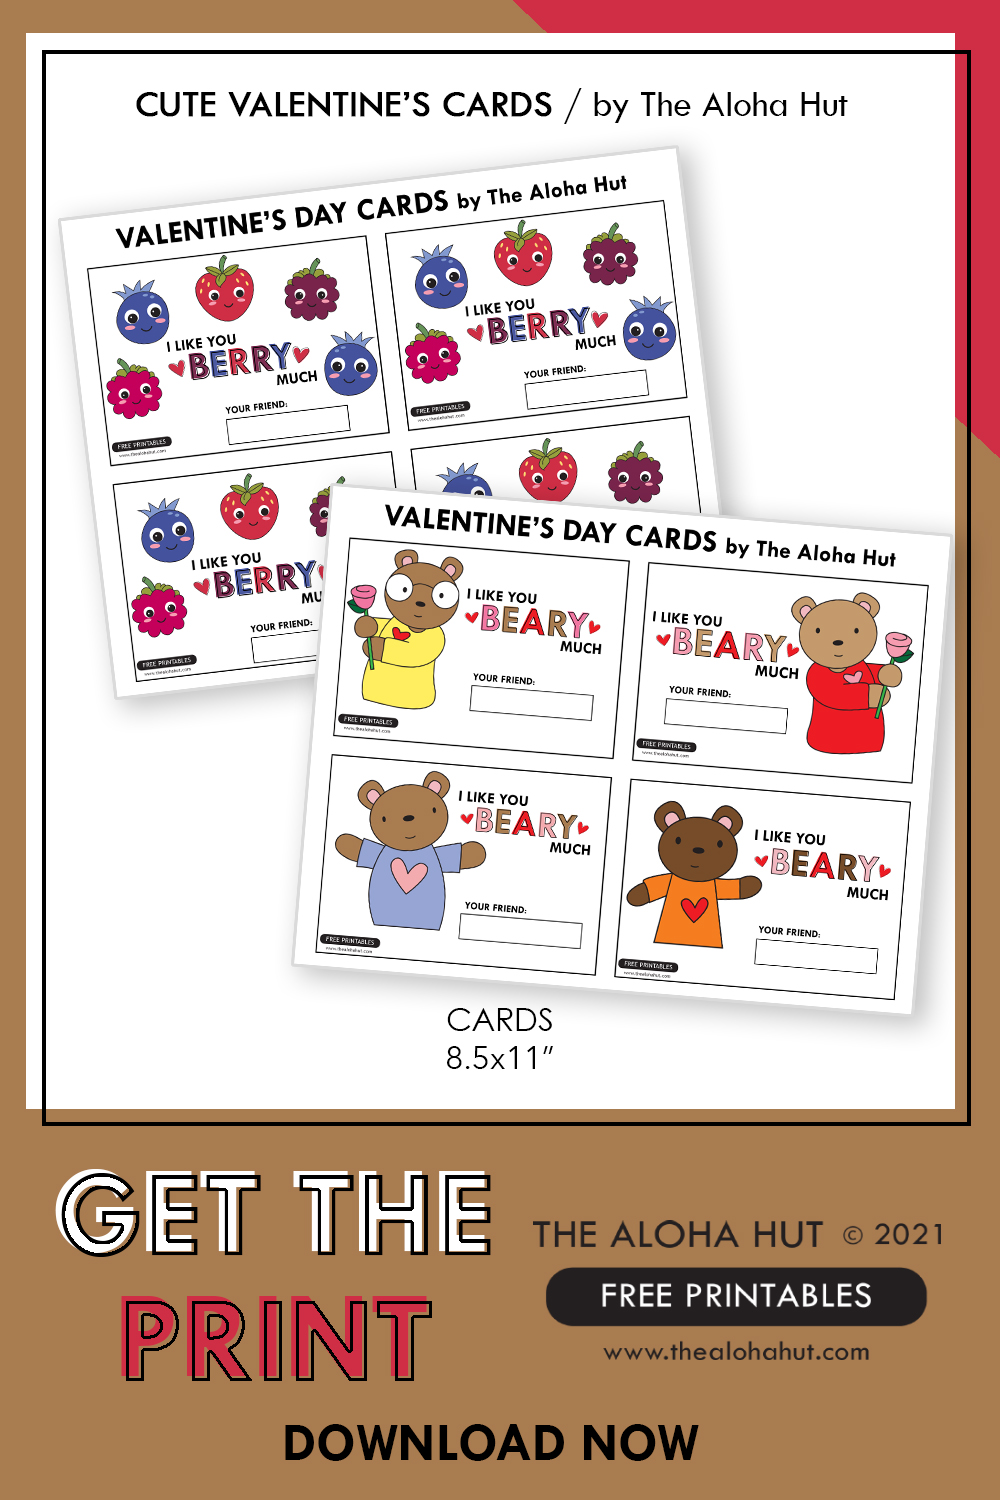 Super Cute Valentine's Day Cards - Free Printables by The Aloha Hut